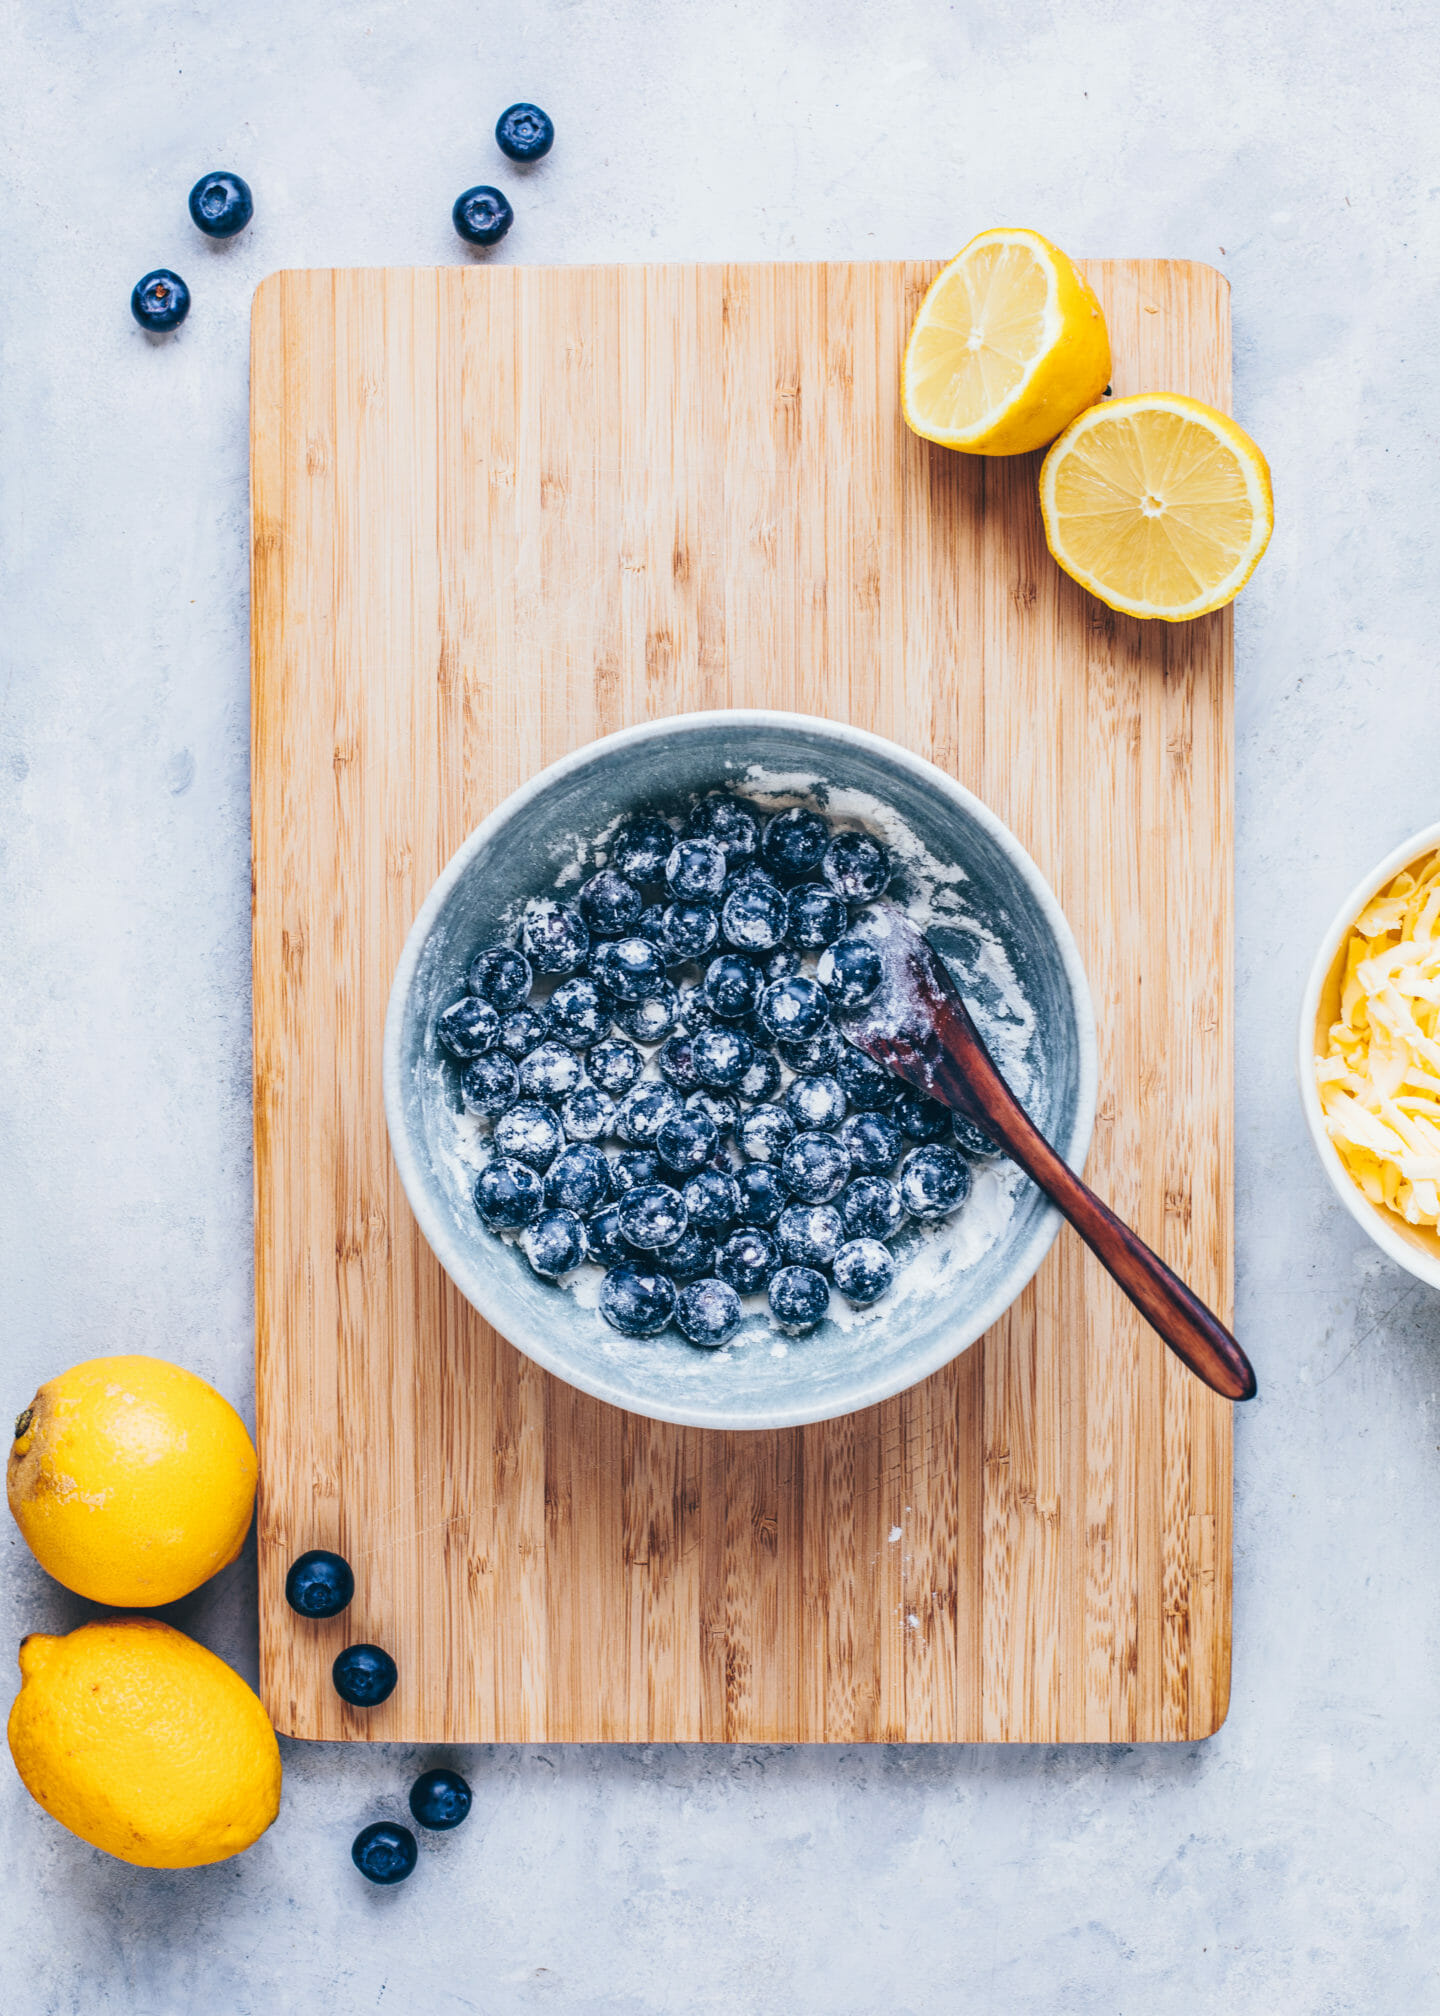 toss blueberries in cornstarch and flour